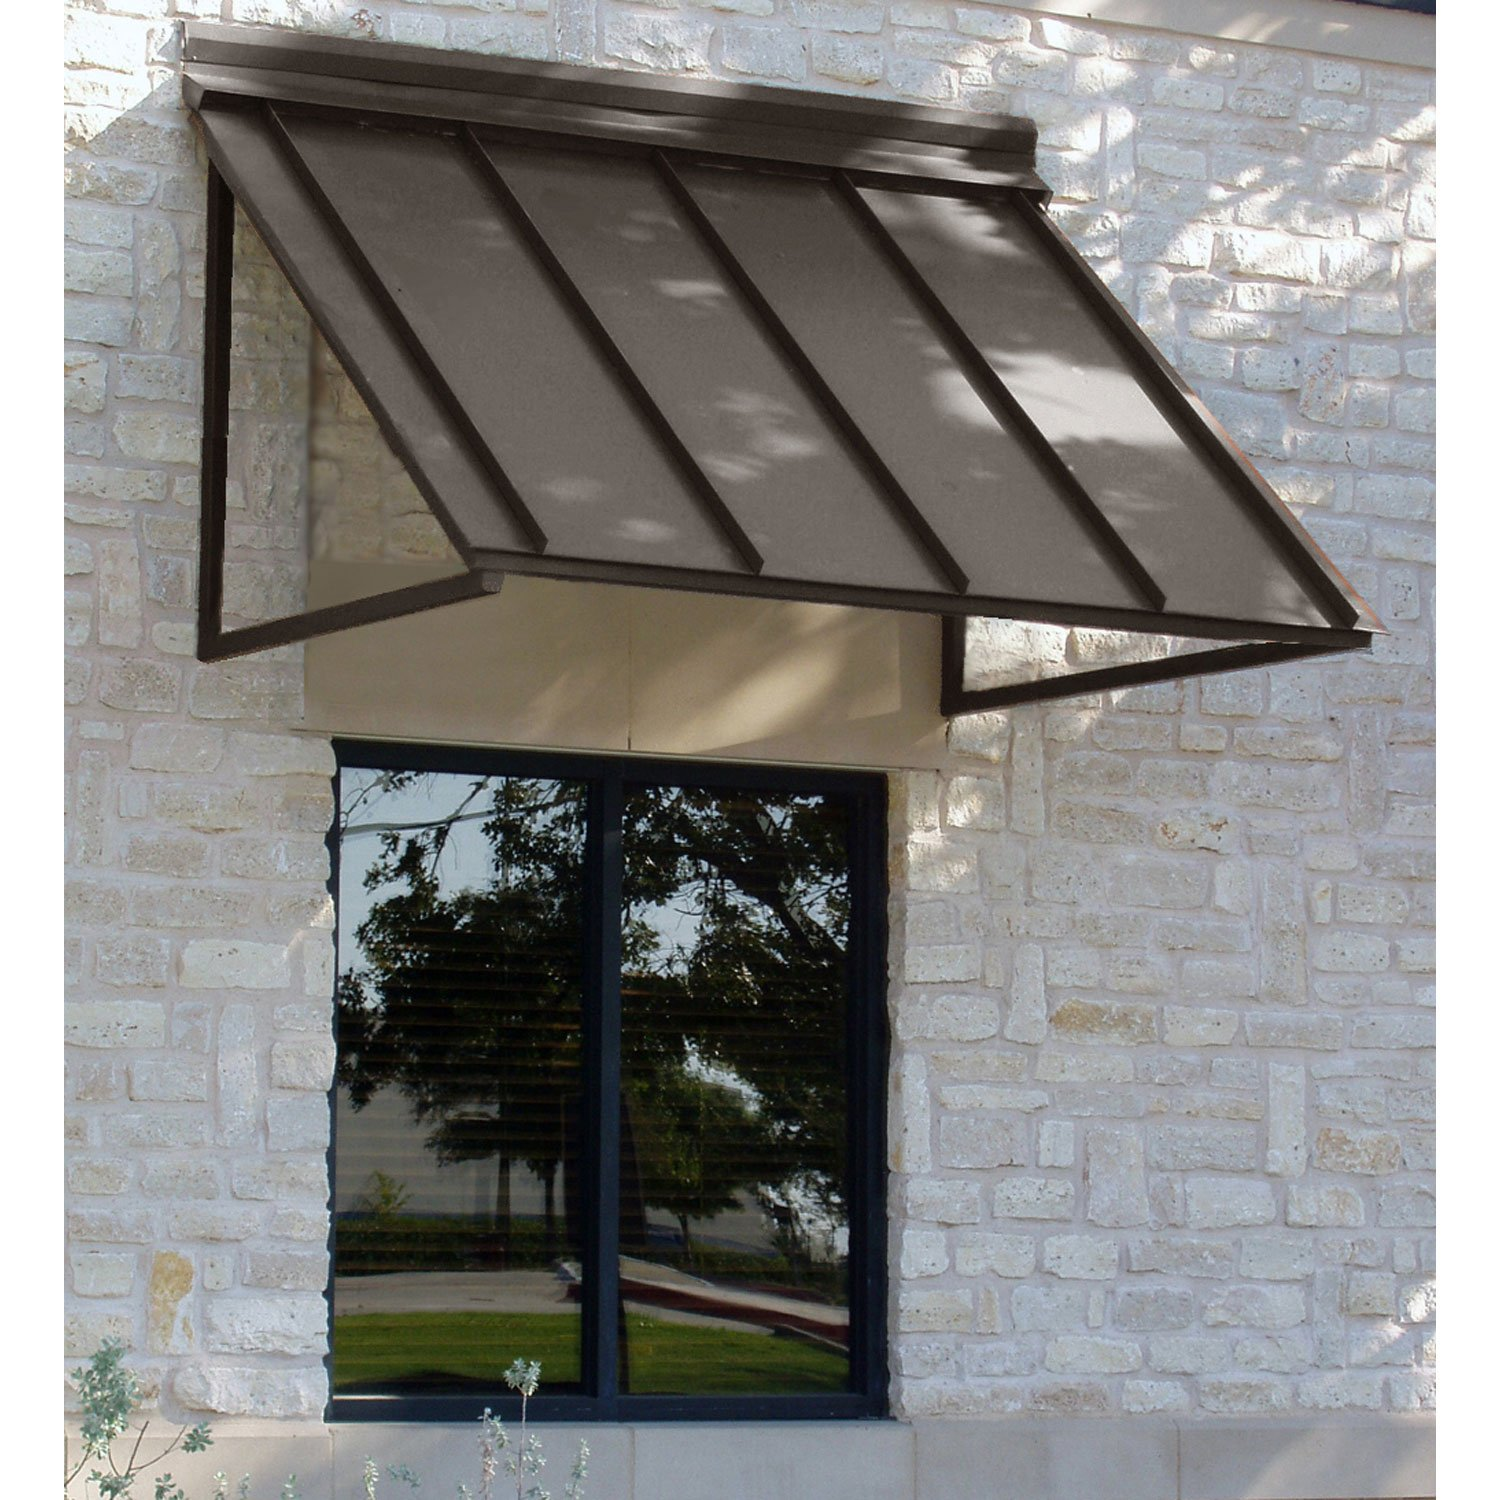 s beauty shld getimage maui olive url tan shop ft lx awning retractable mark manual